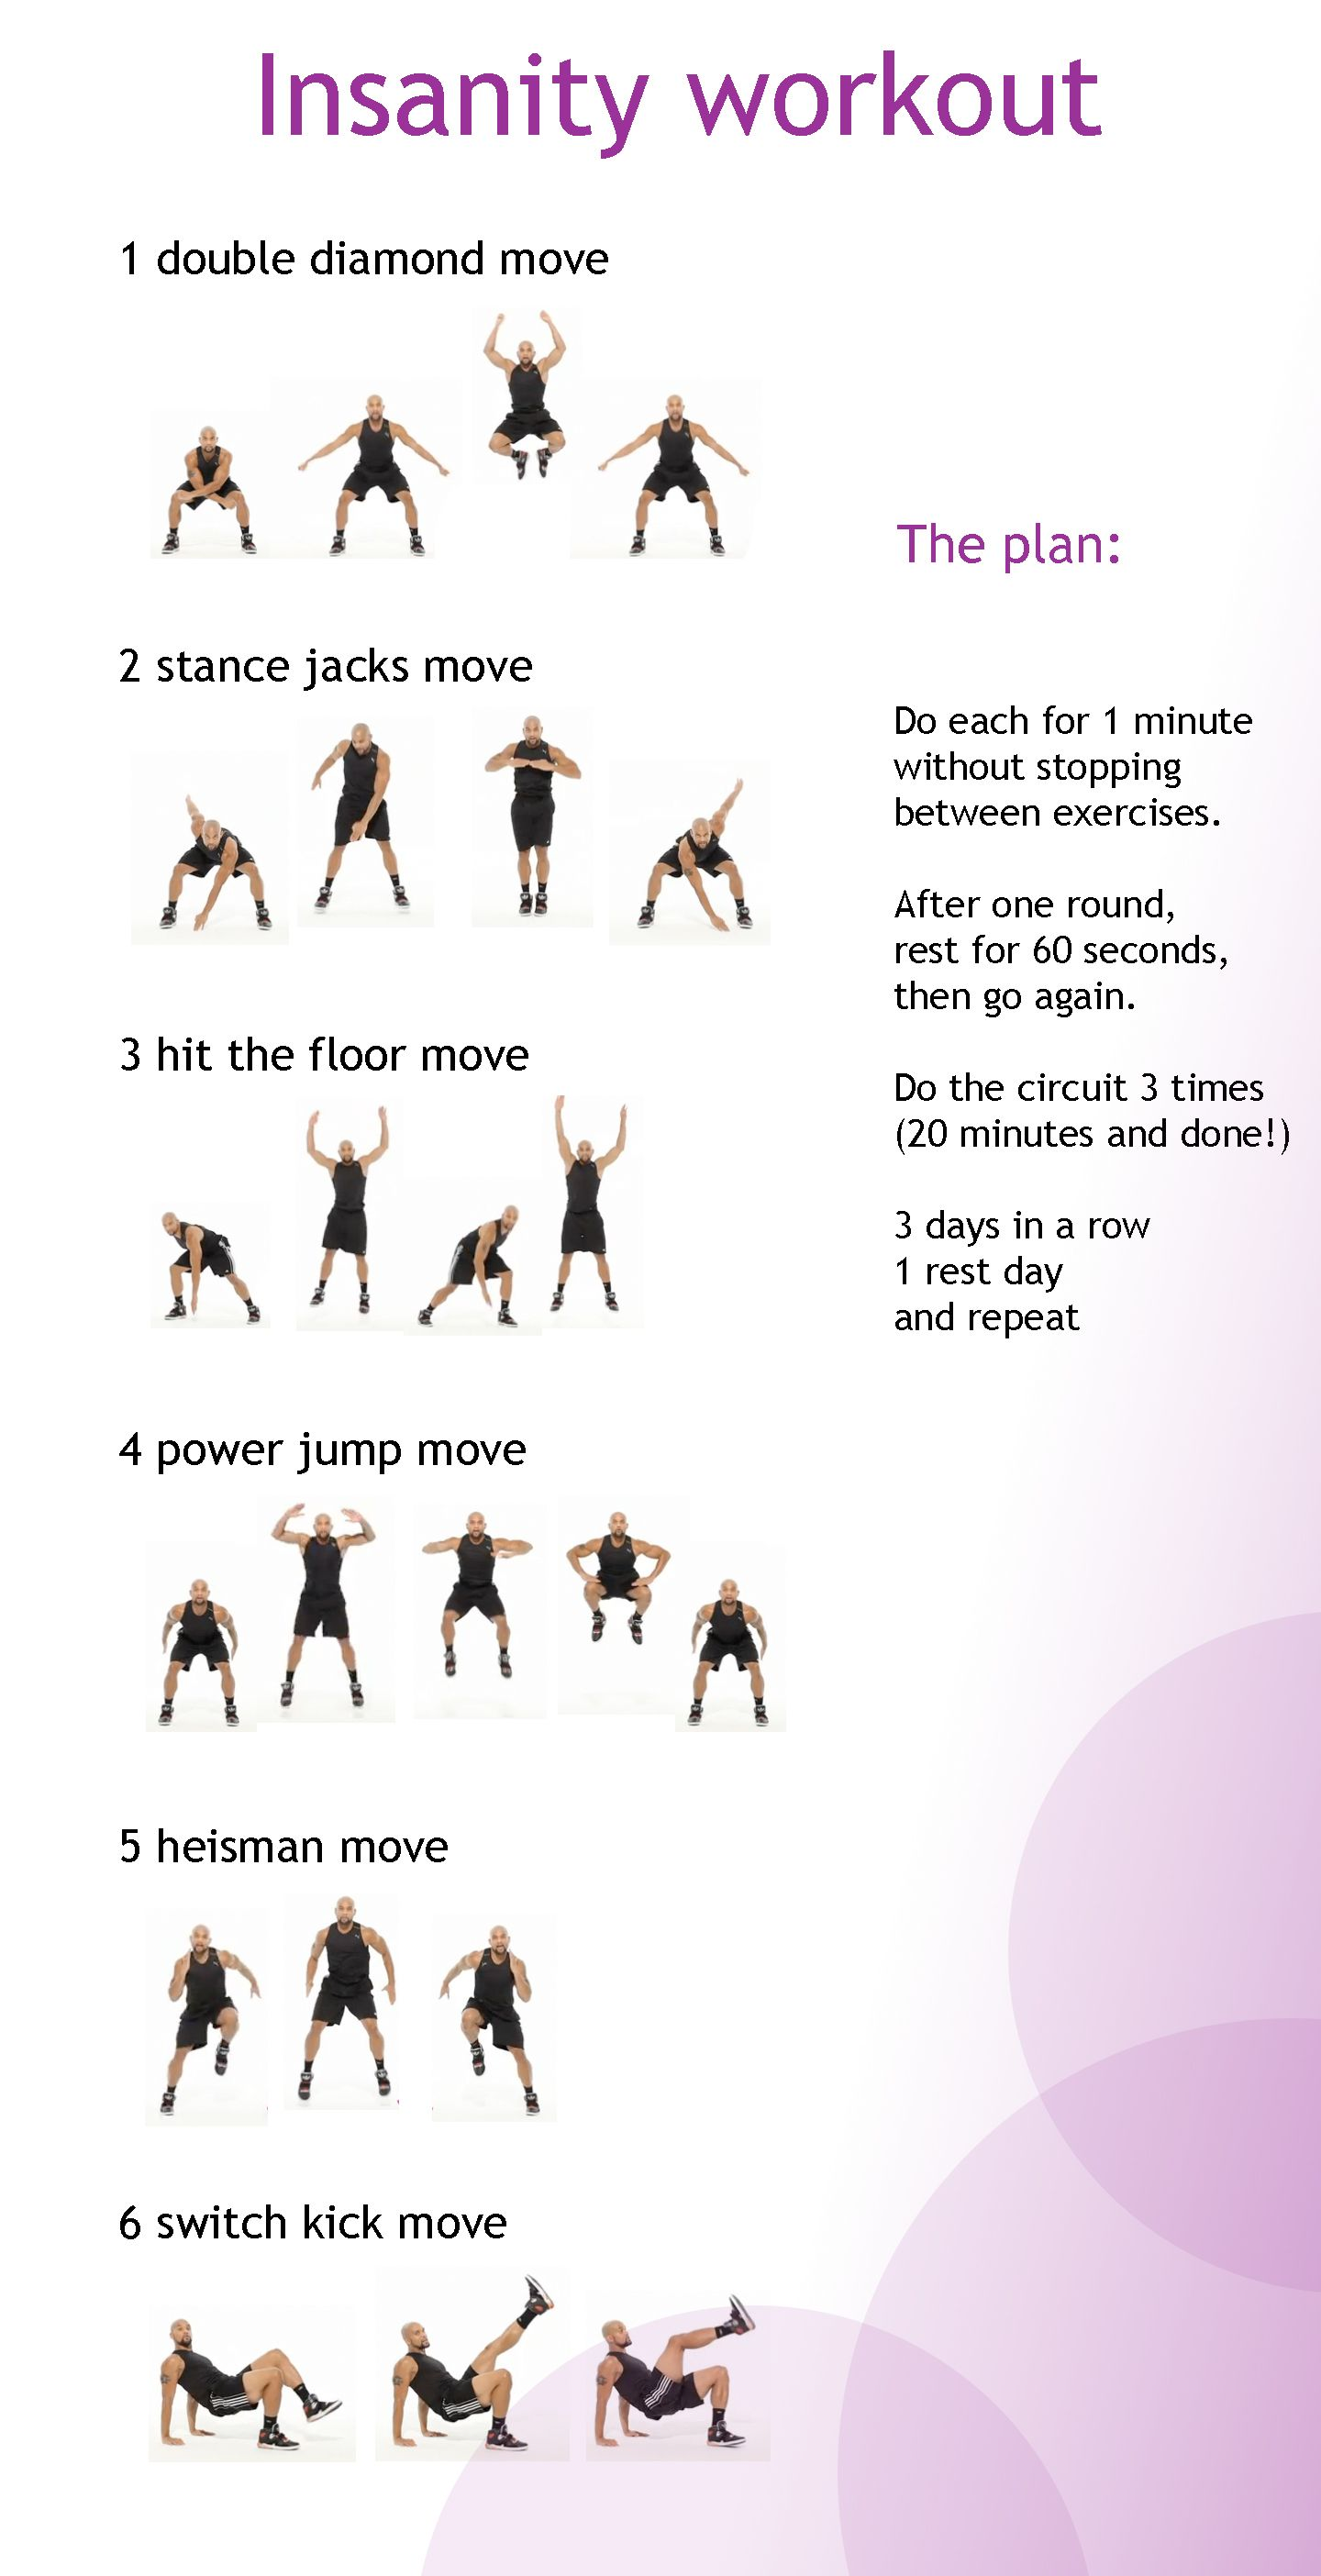 Insanity workout made simplehave to try this after baby kabrin insanity workout made simplehave to try this after baby kabrin comes in 1betcityfo Choice Image